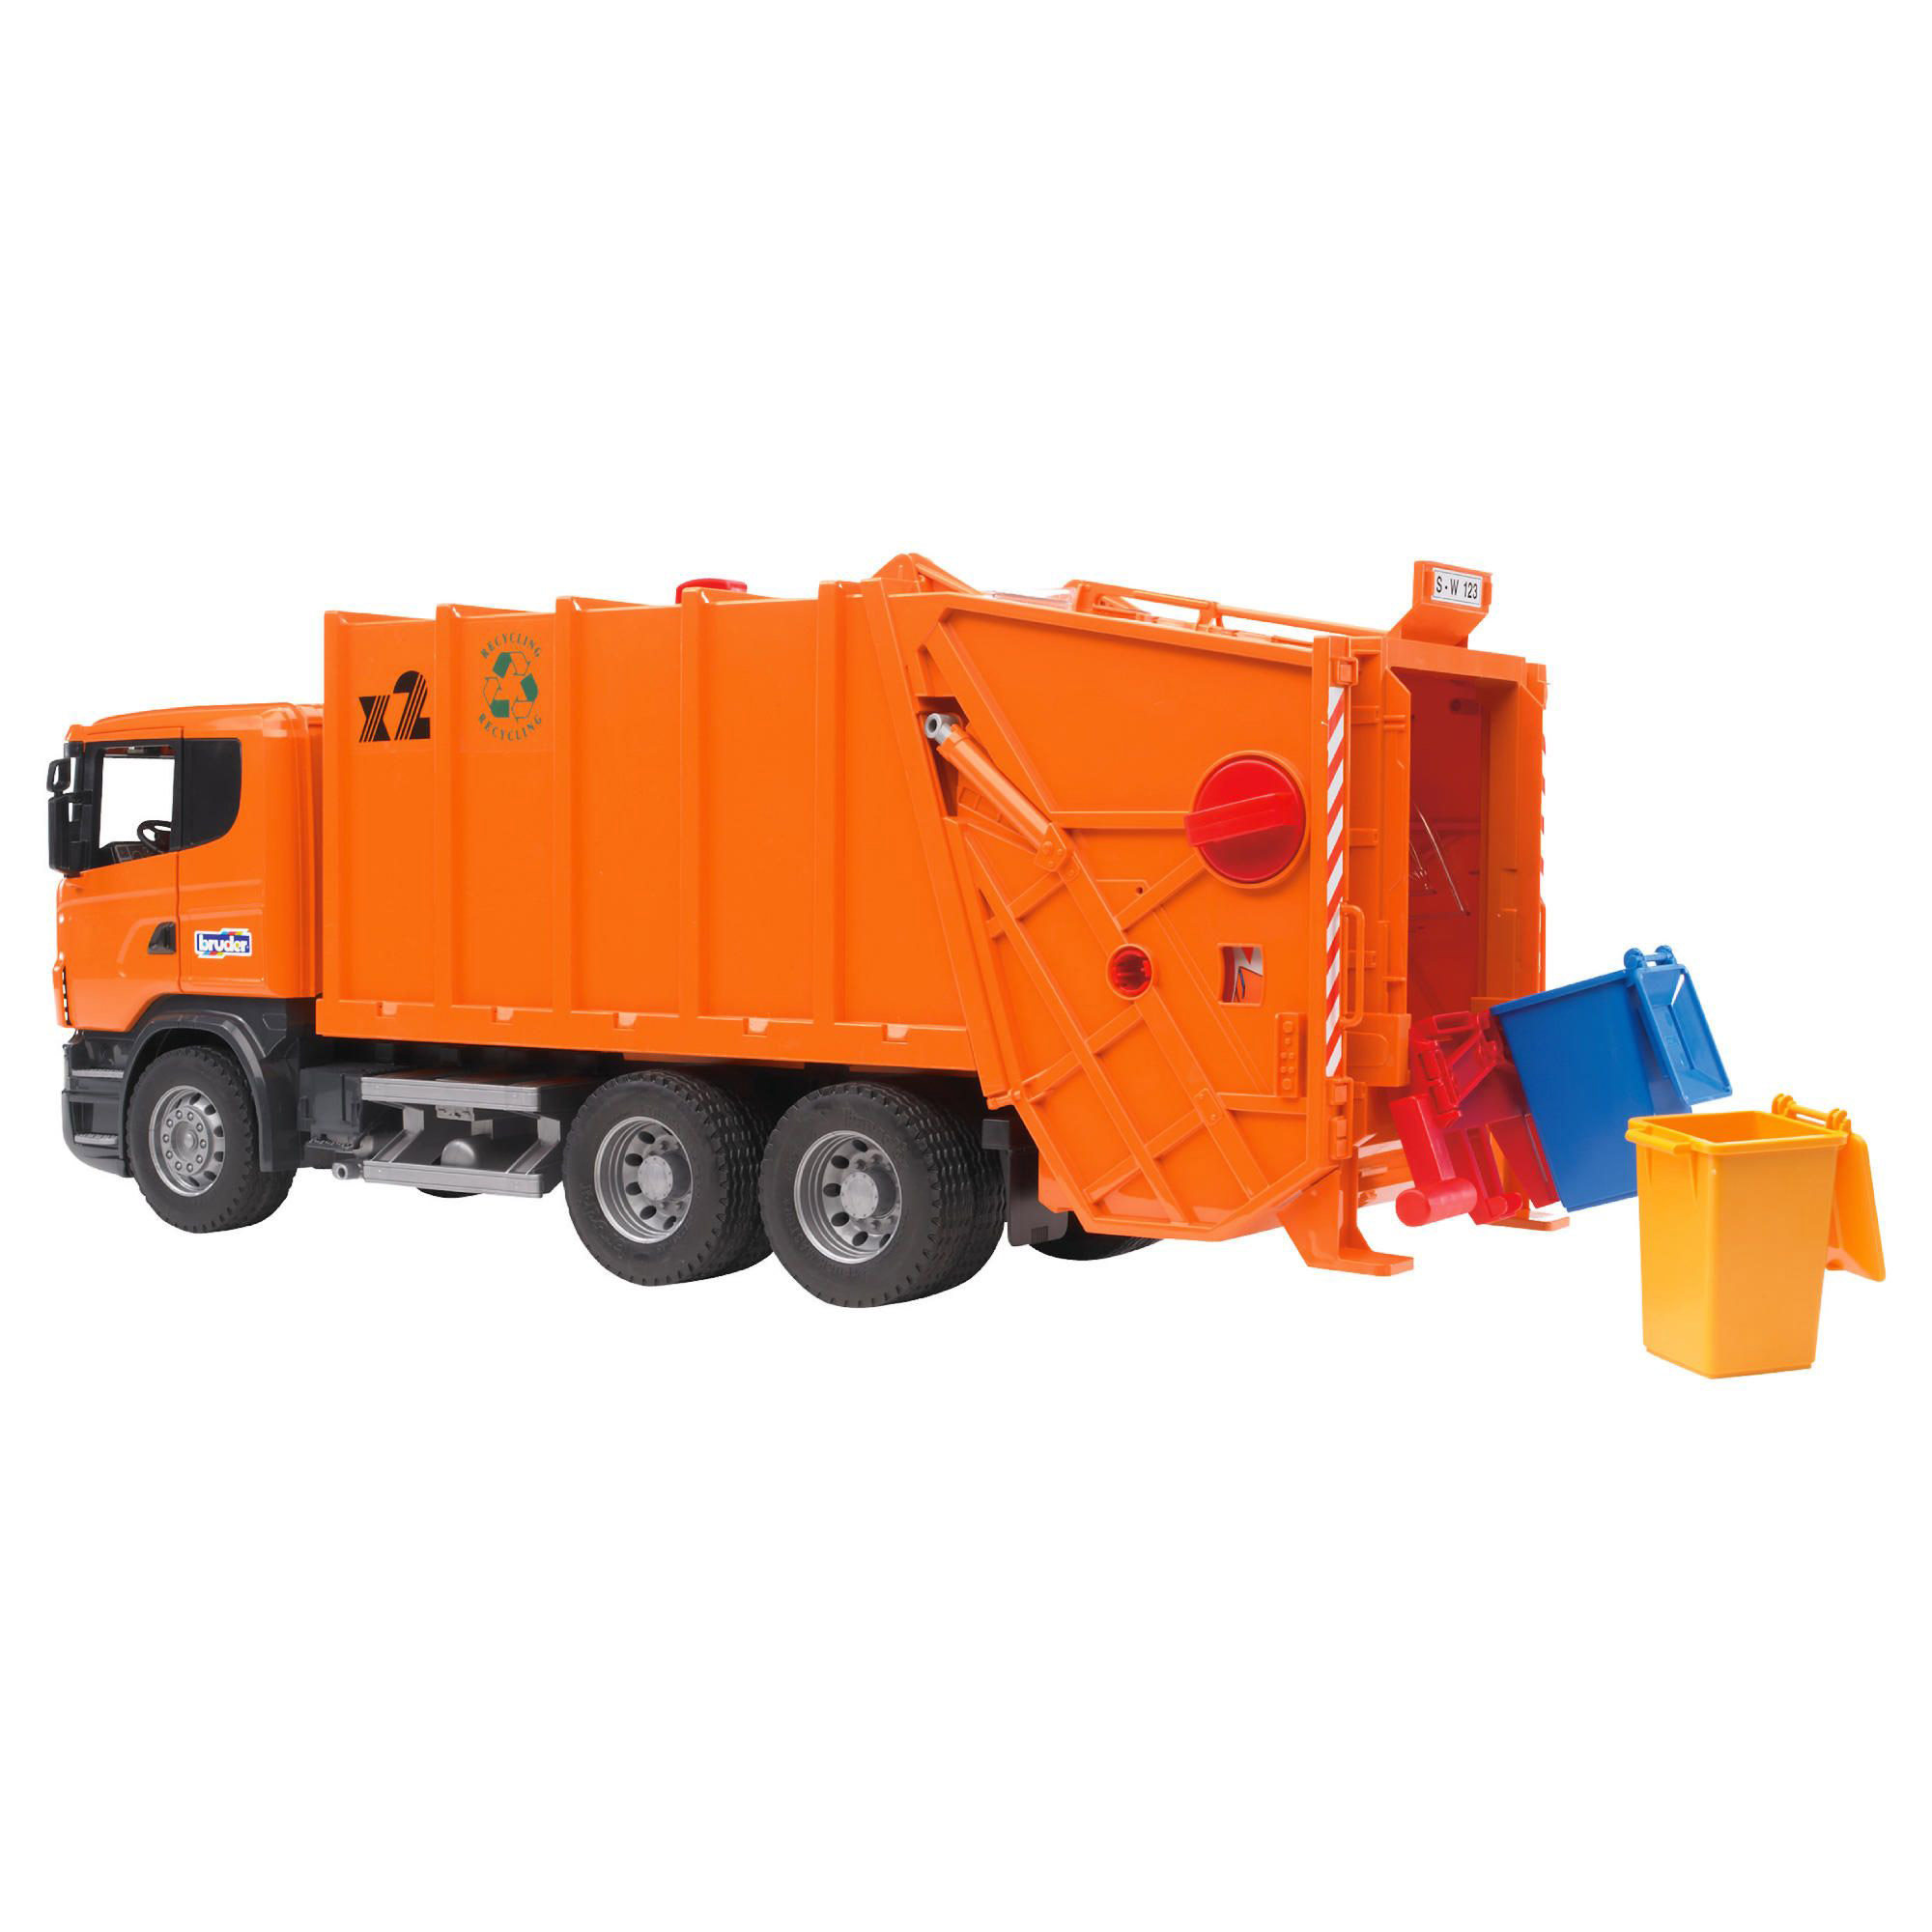 Bruder Construction Toys For Boys : Bruder toys construction car scania r series garbage truck